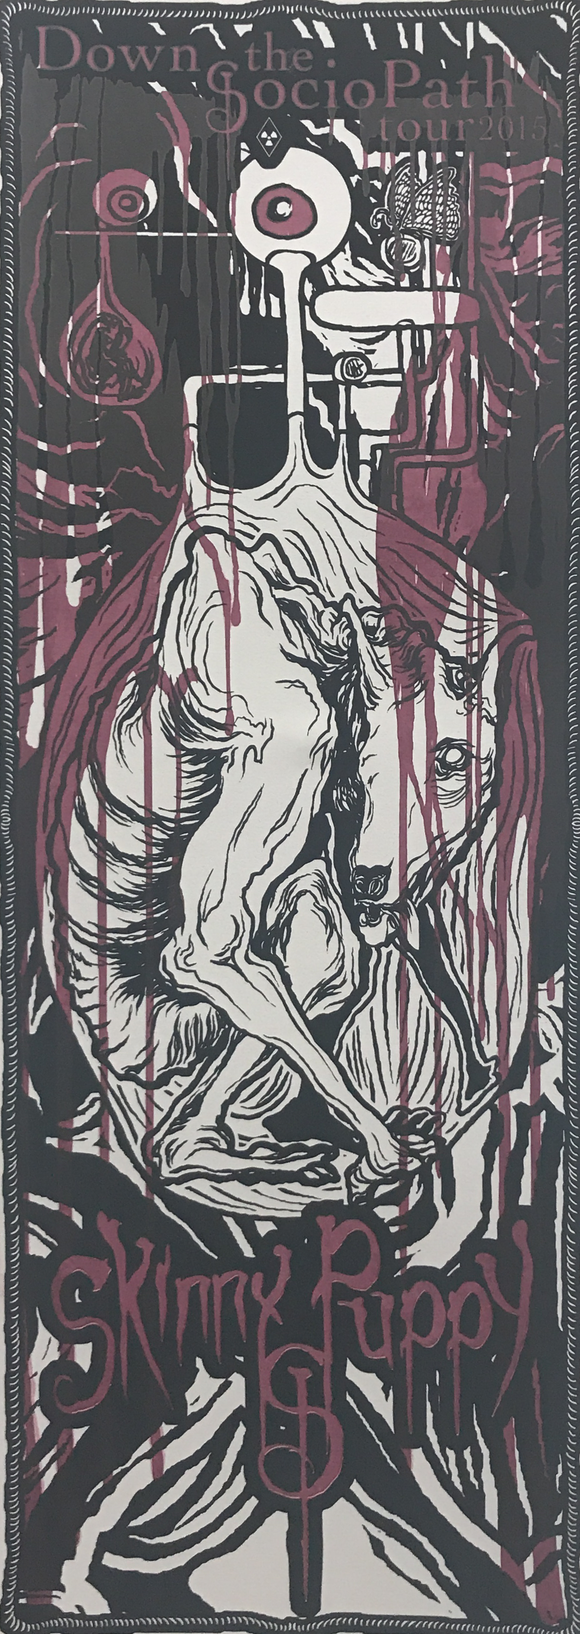 Skinny Puppy Down the SocioPath Tour 2015 Poster - test prints